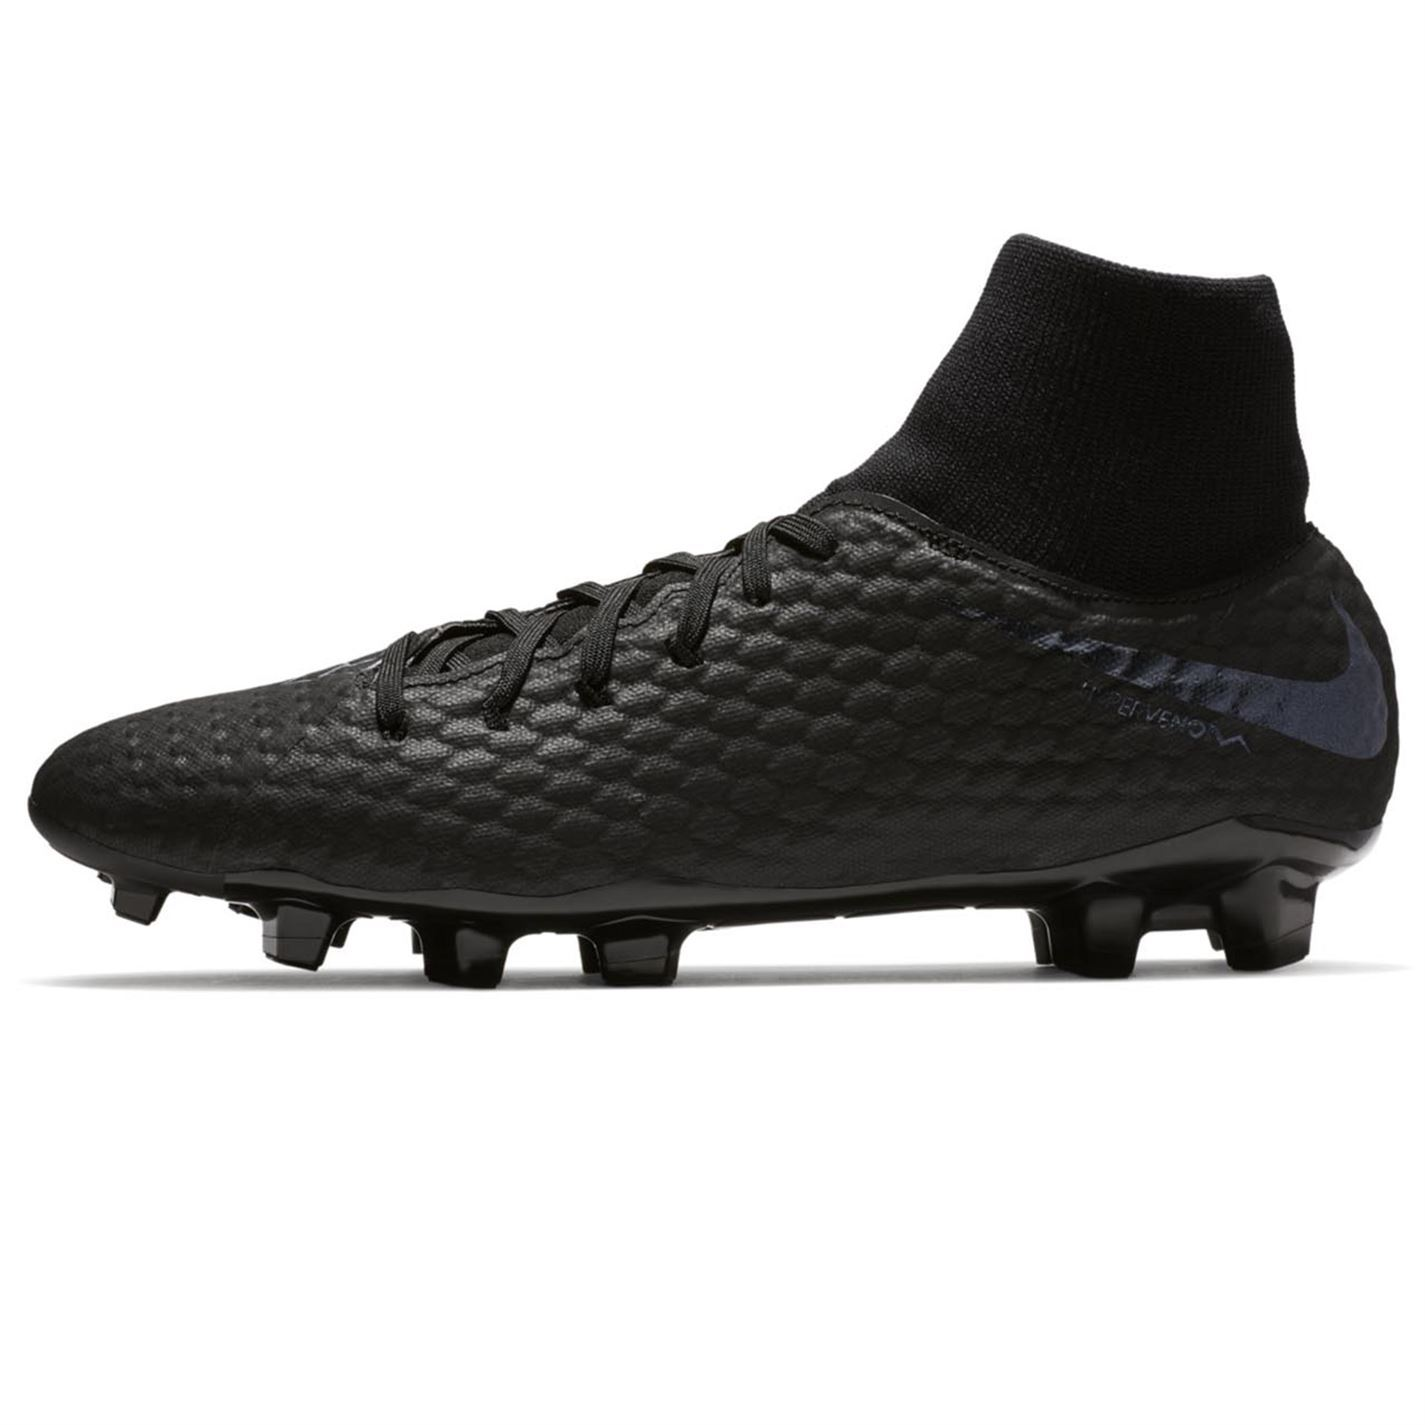 97394fc28a Nike Hypervenom Phantom Academy DF Firm Ground Football Boots Mens ...